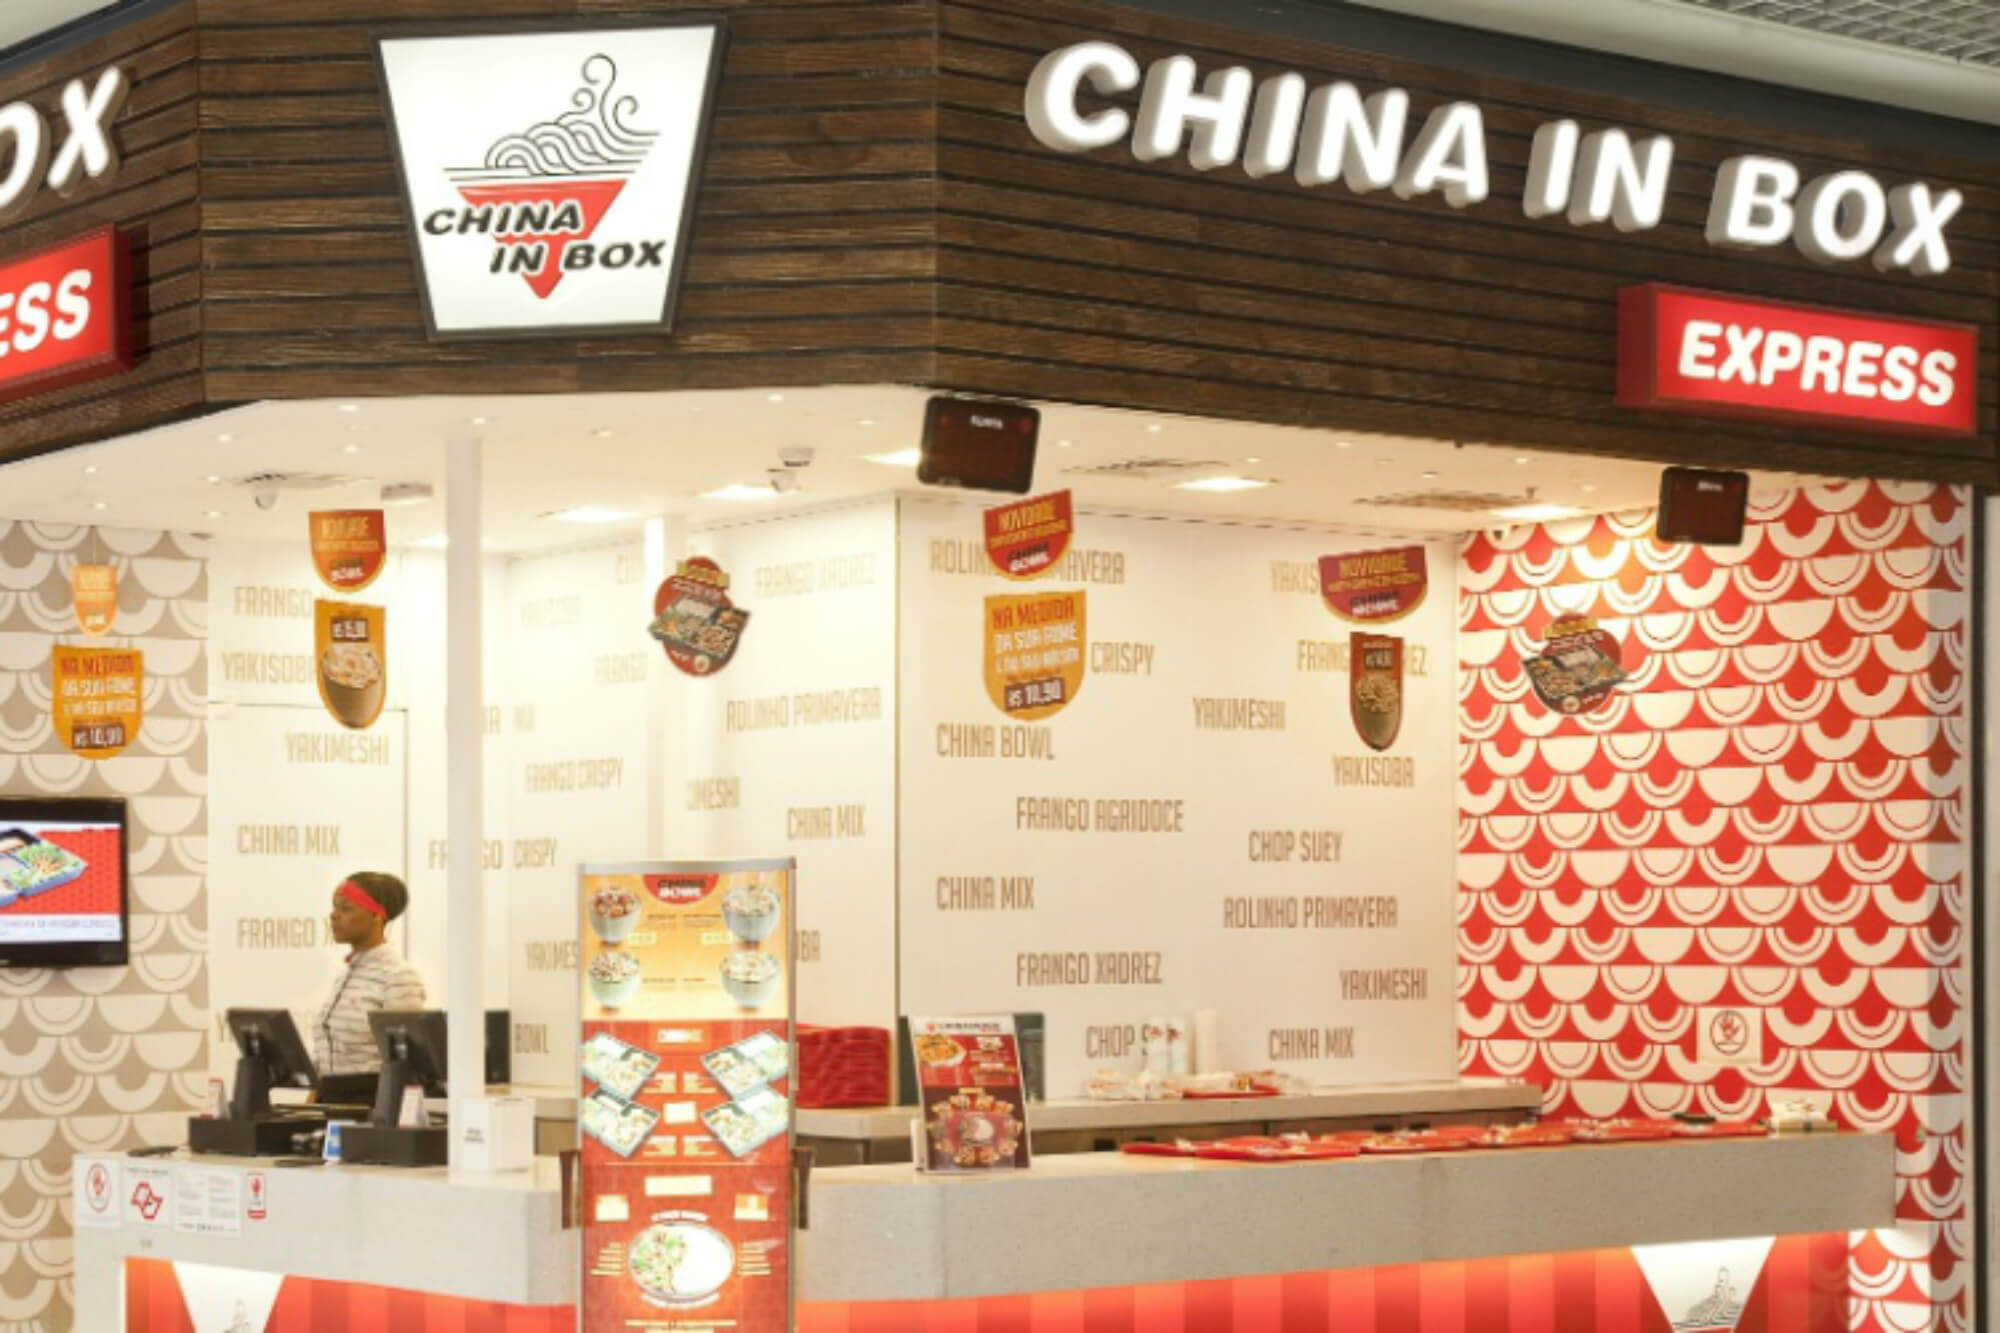 franquias de fast food china in box